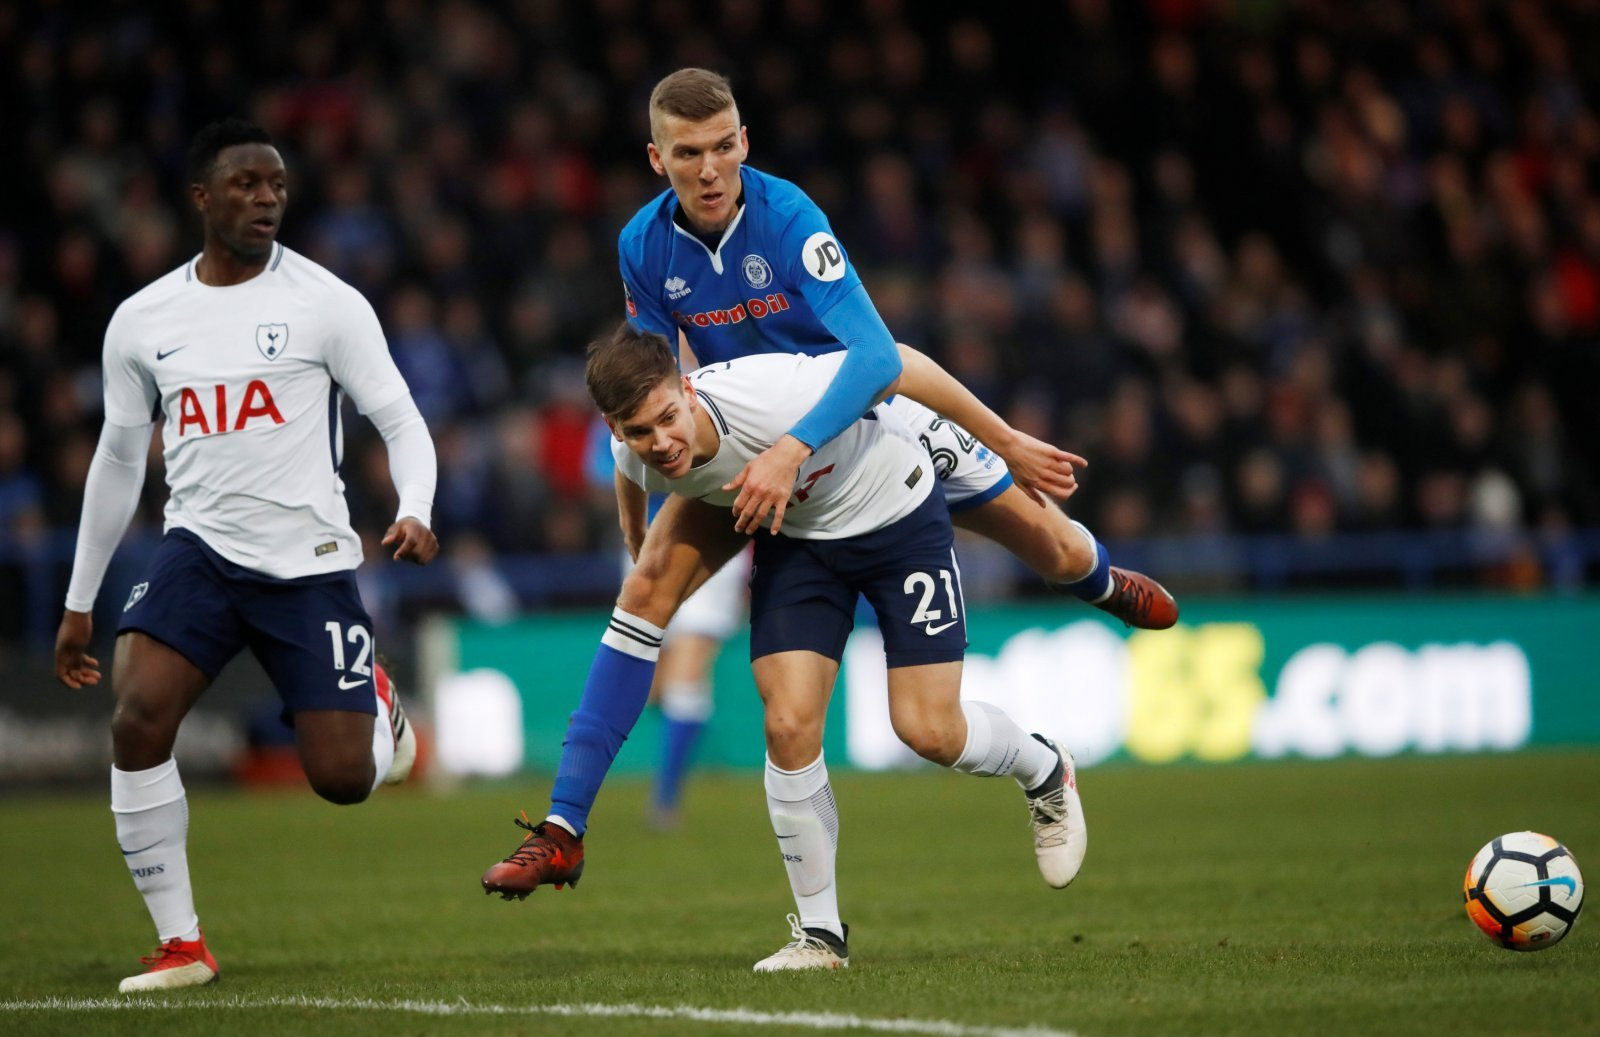 Leeds simply must sign Juan Foyth before the August deadline